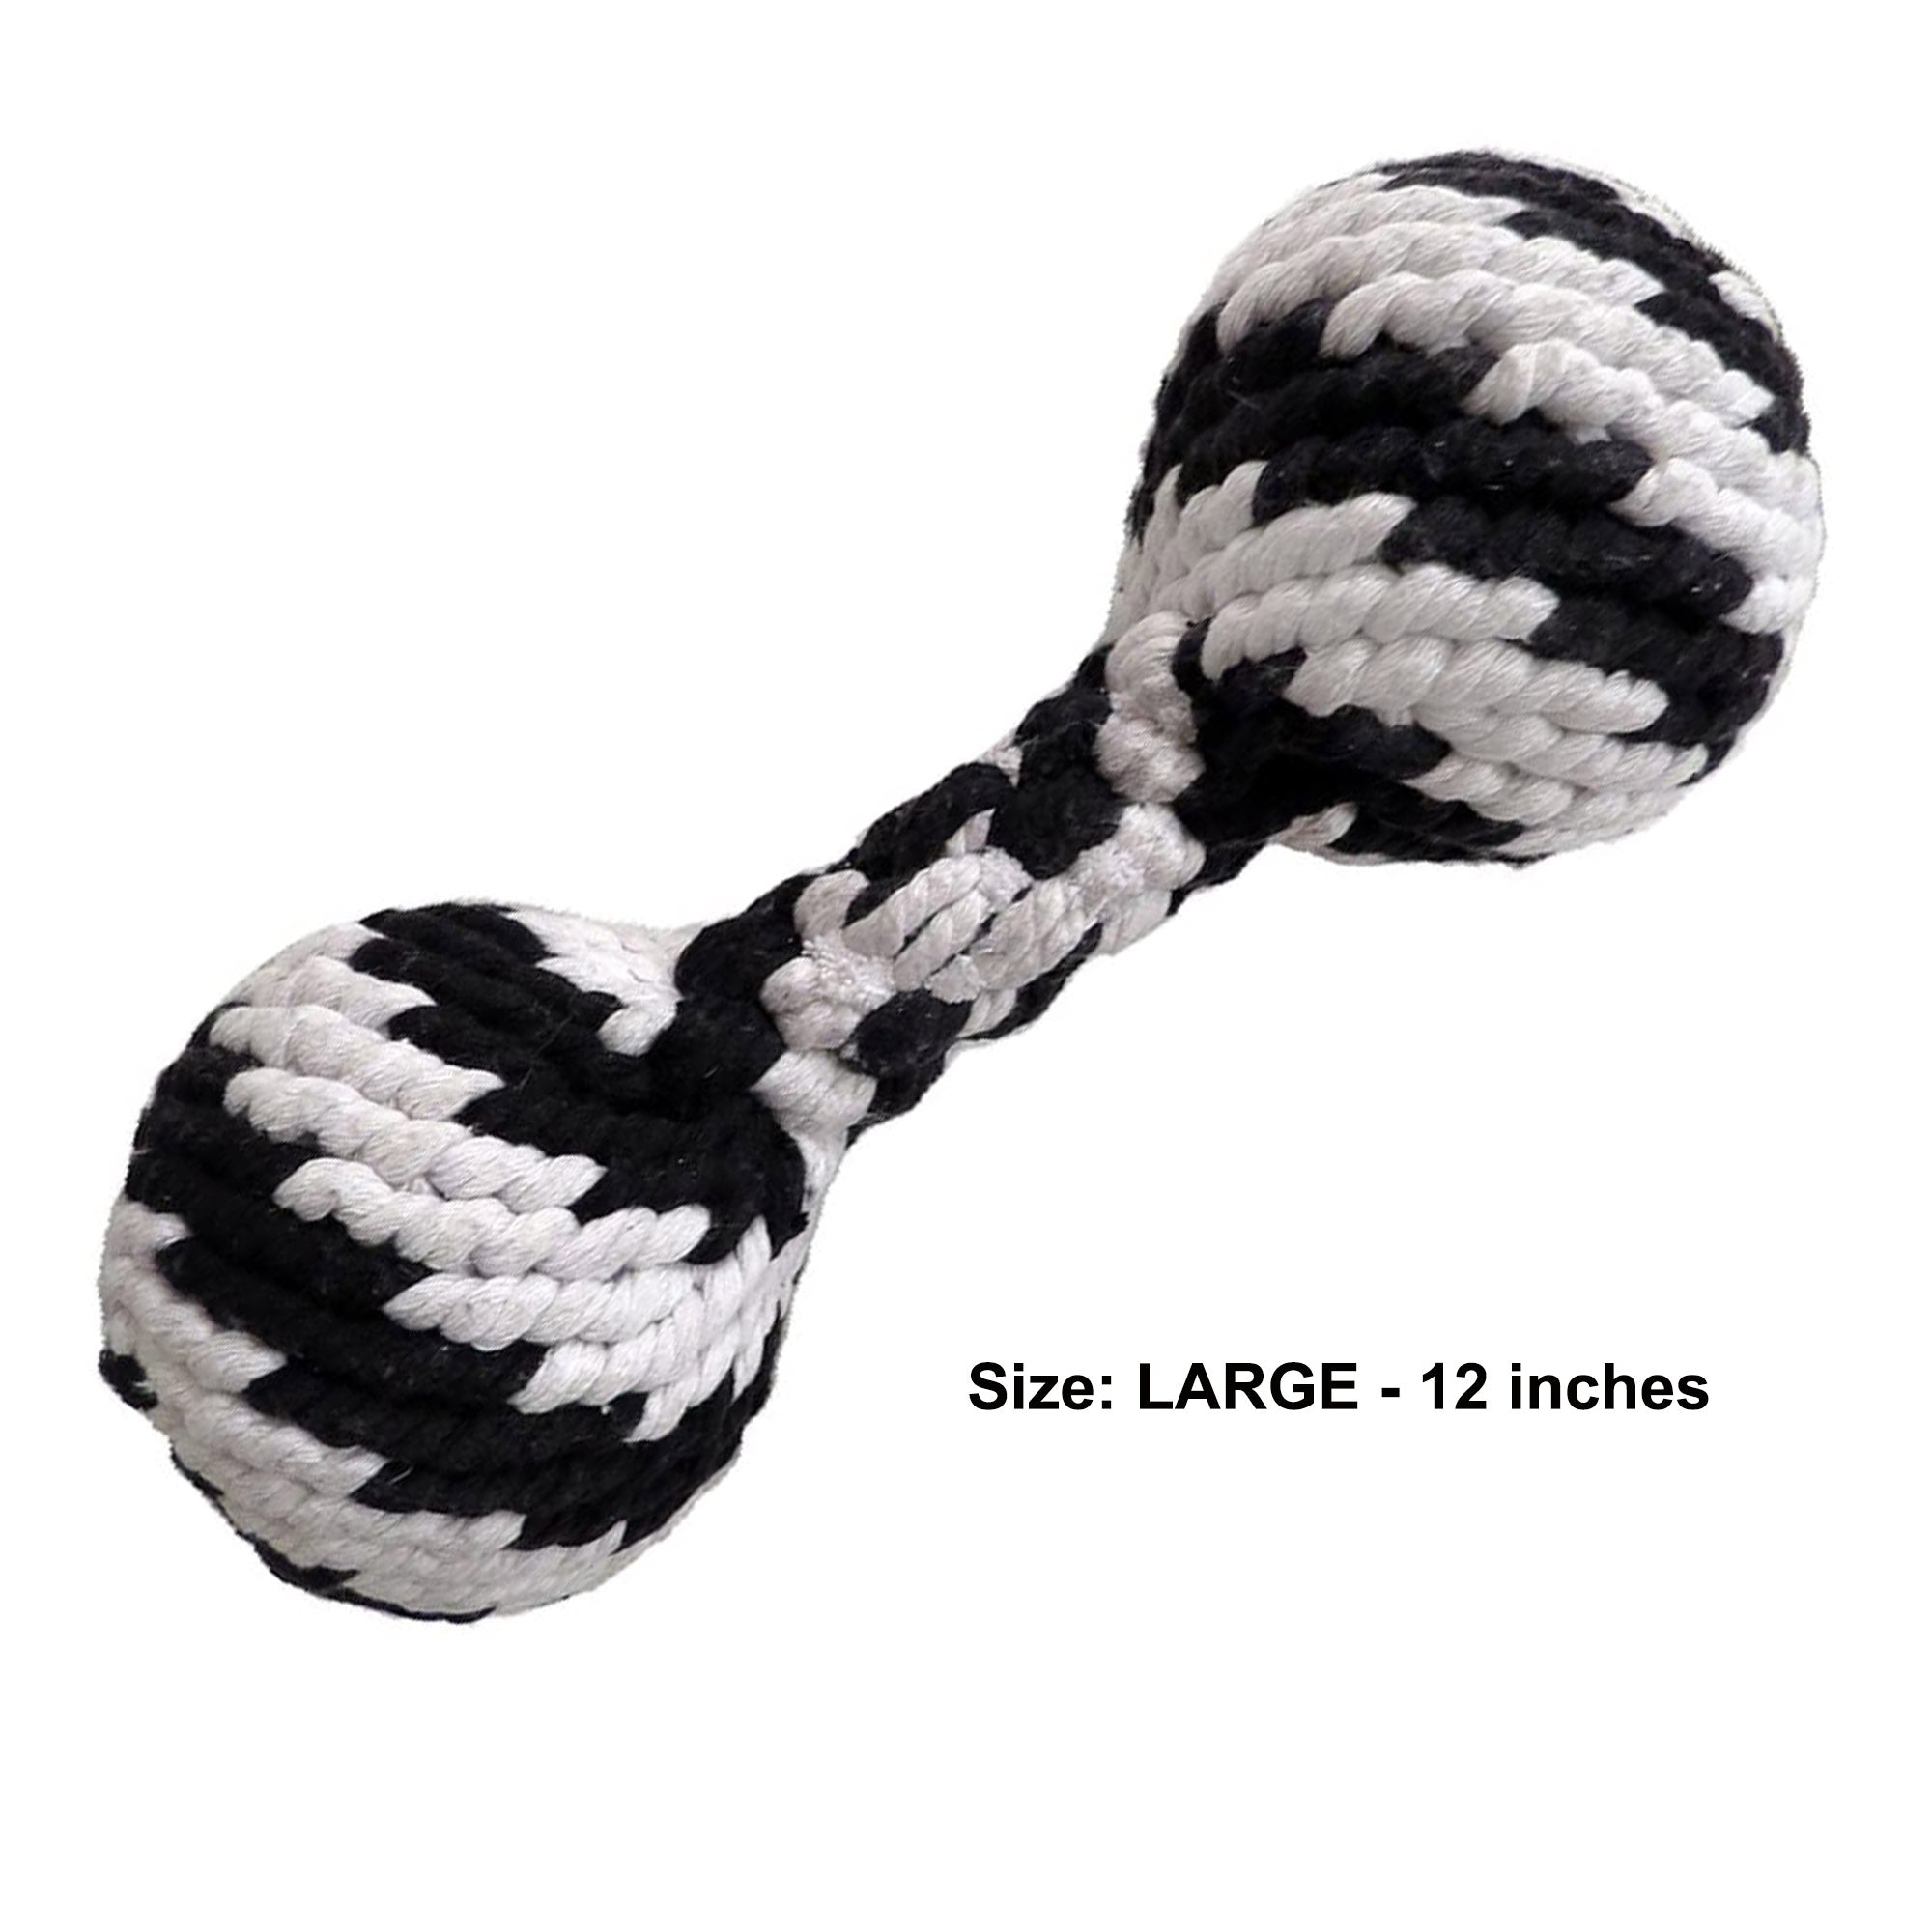 Super Scooch Braided Rope Squeaker Dumbbell Dog Toy